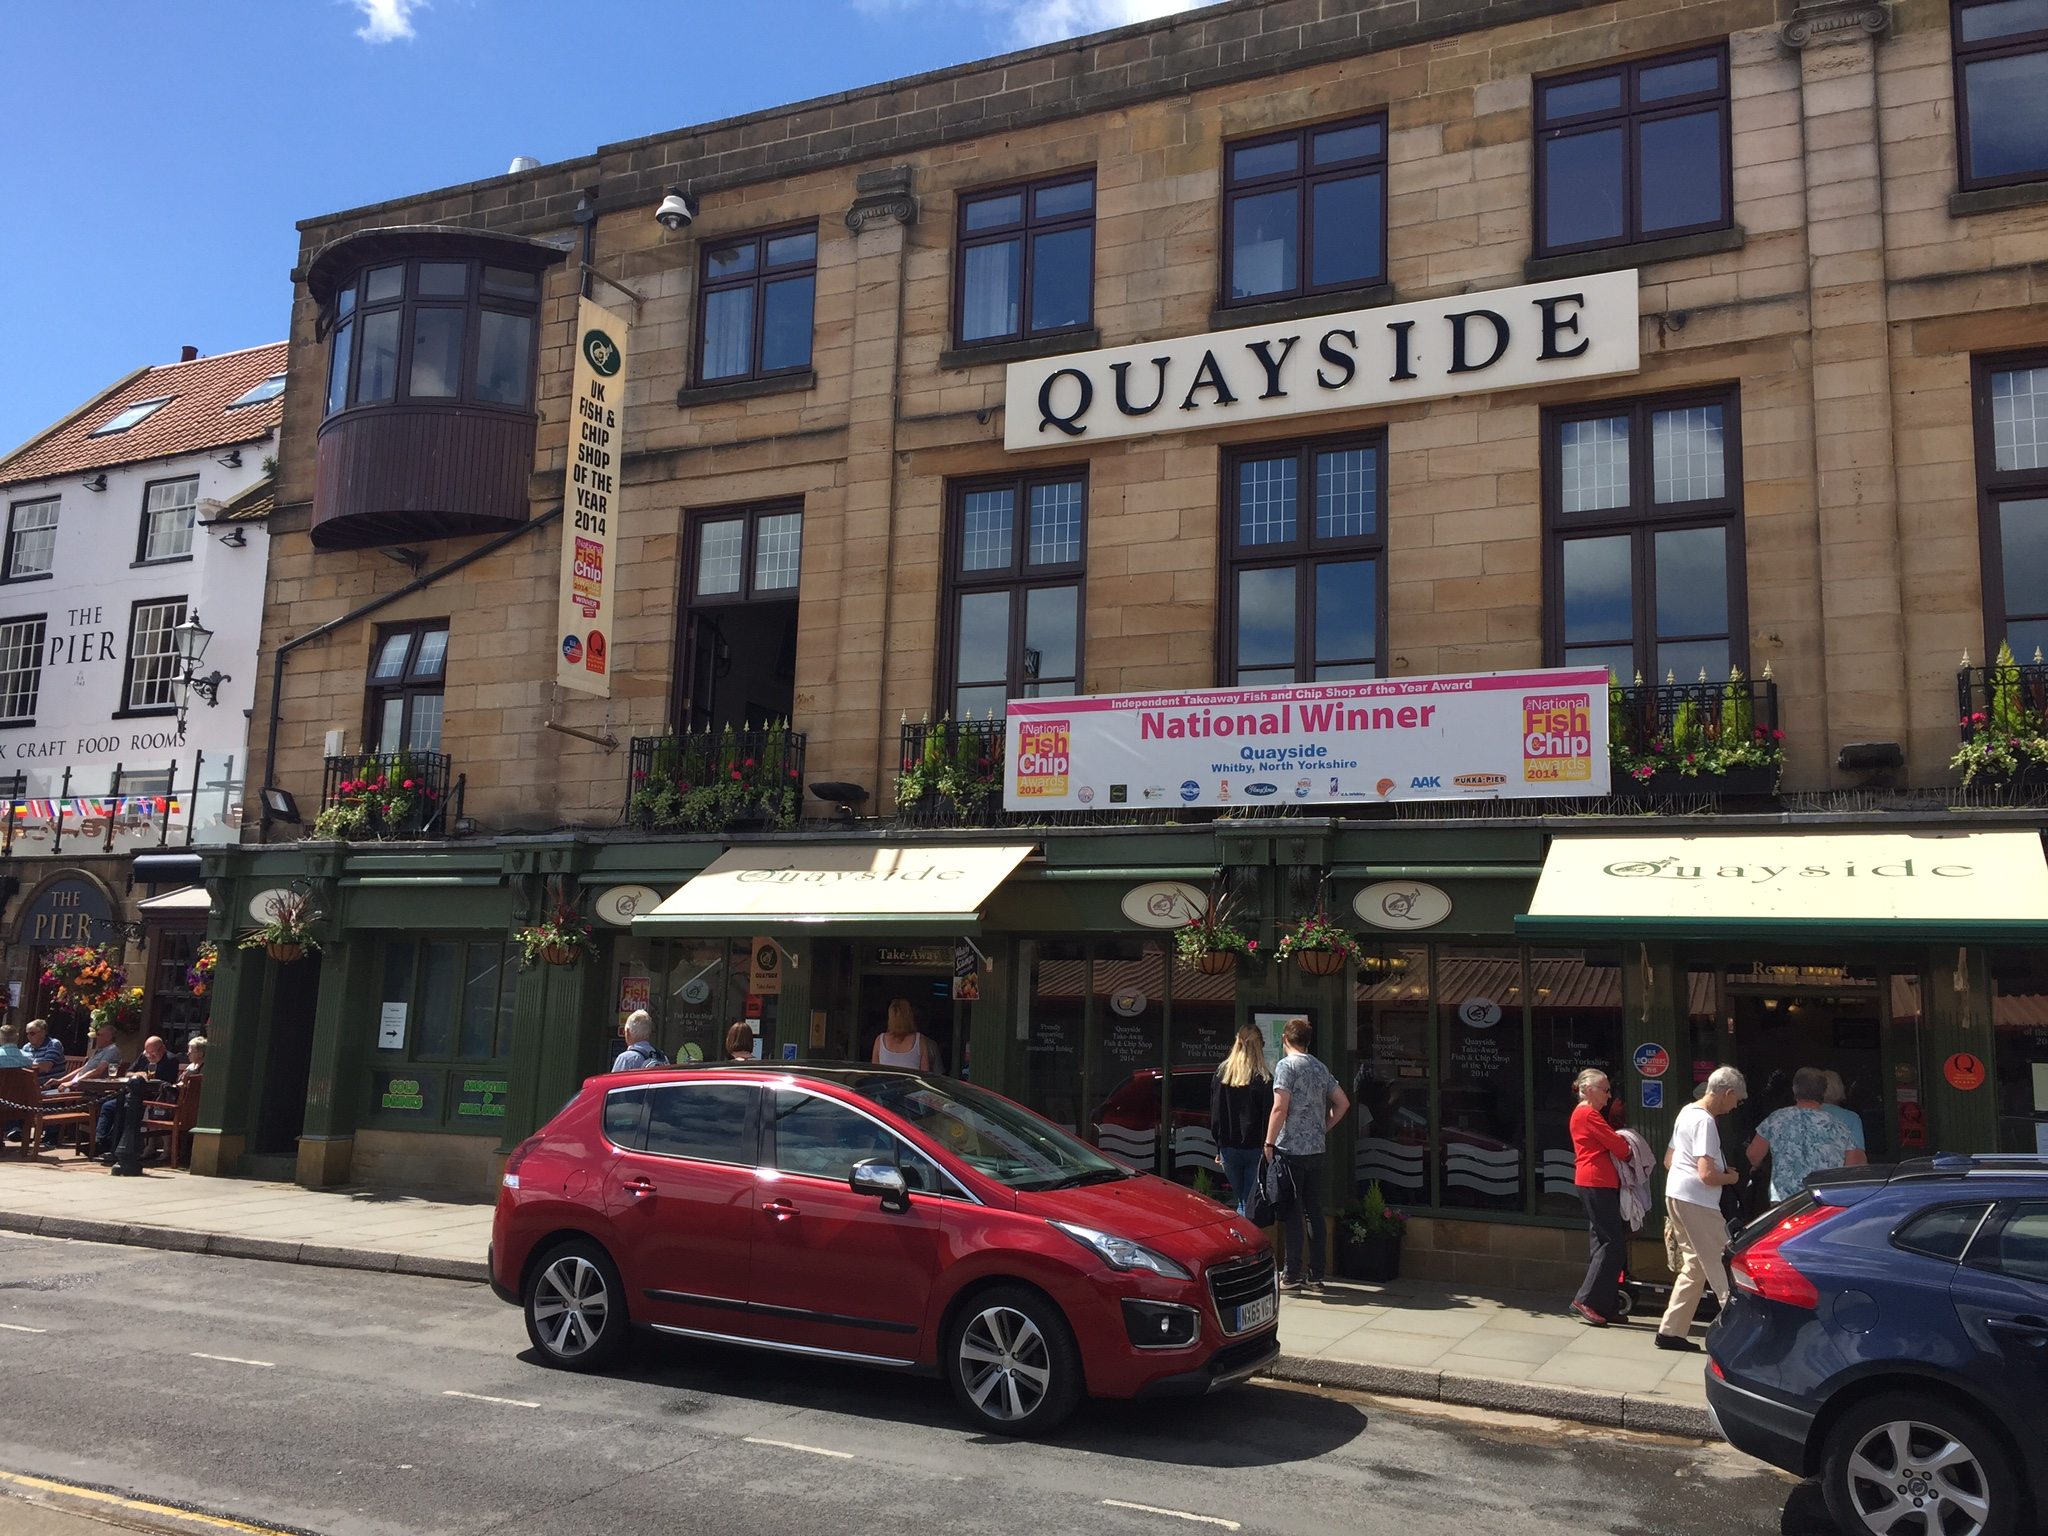 Quayside in Whitby, a very smart looking fish and chips shop!